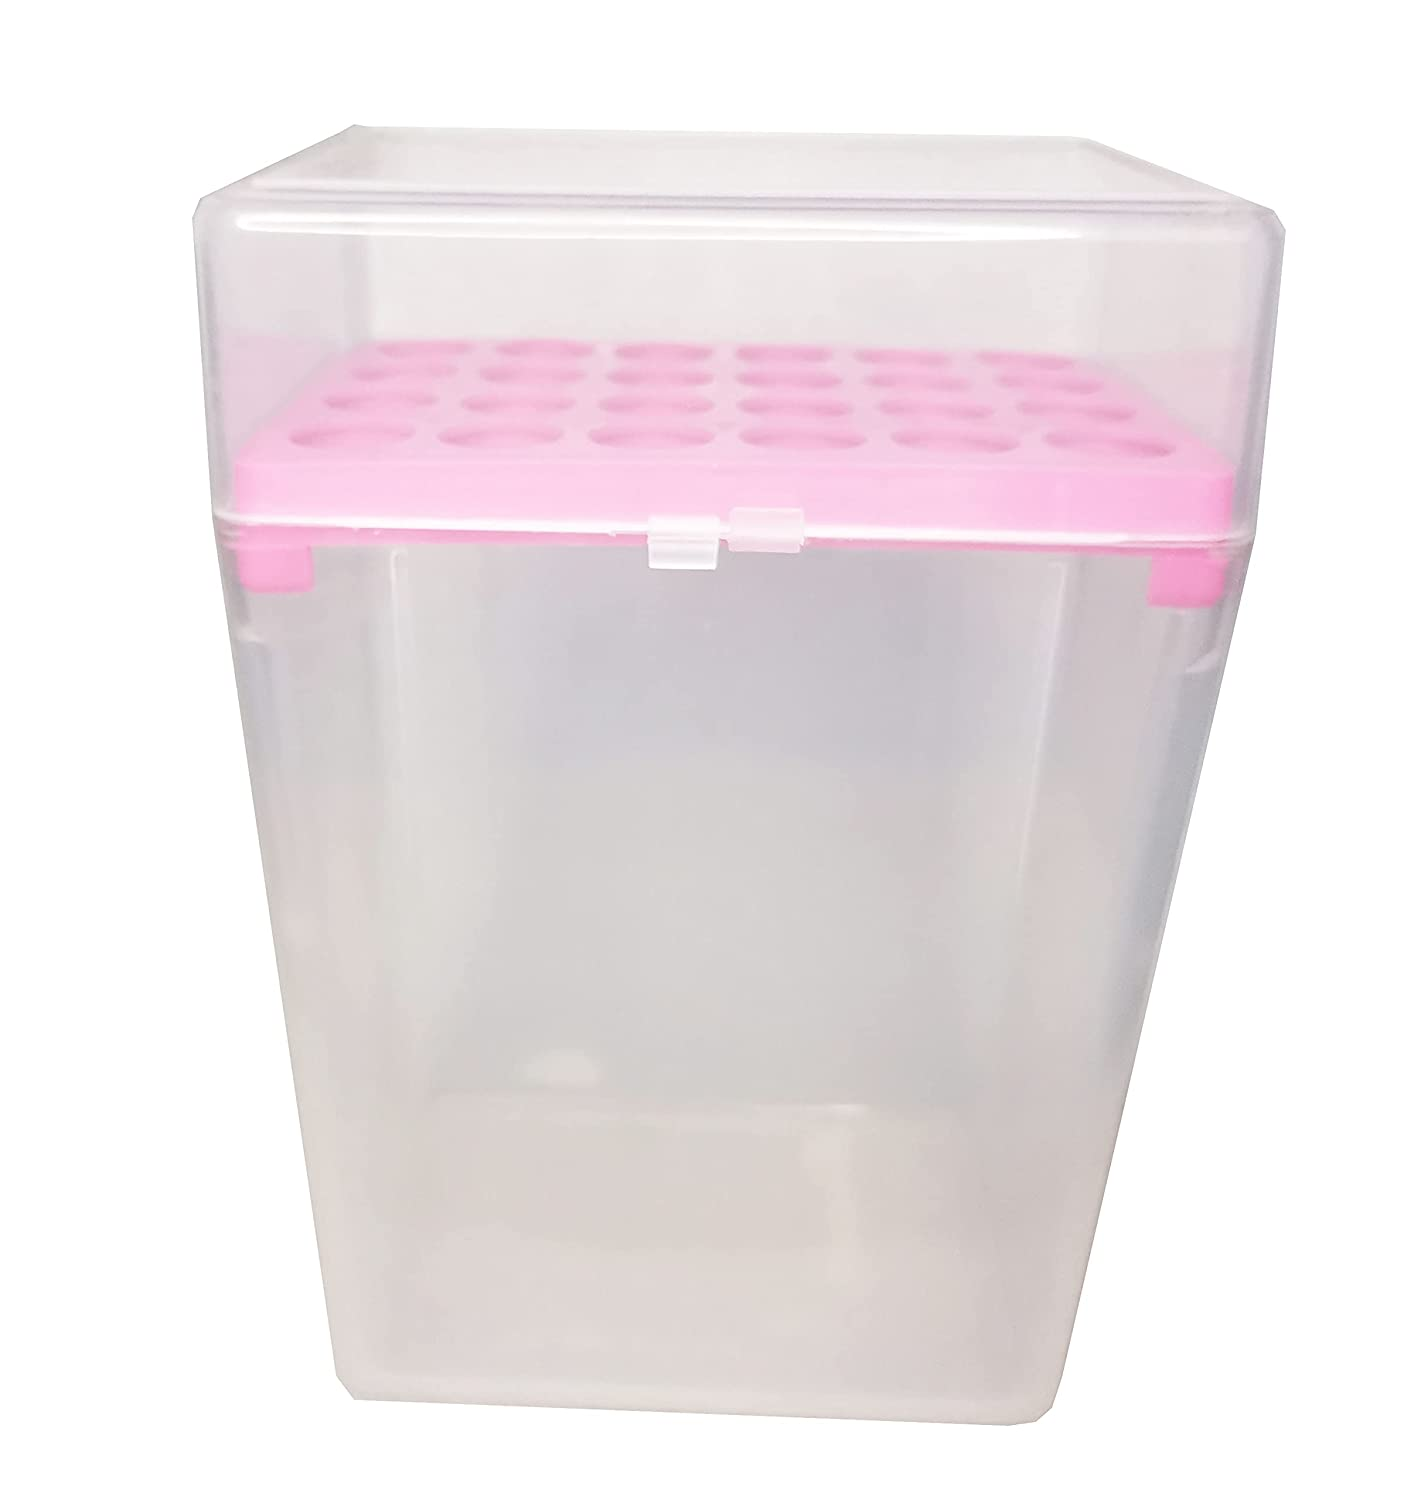 Laboratory 24 Positions 10ml Tips discount Box Pipette Rack Free shipping on posting reviews